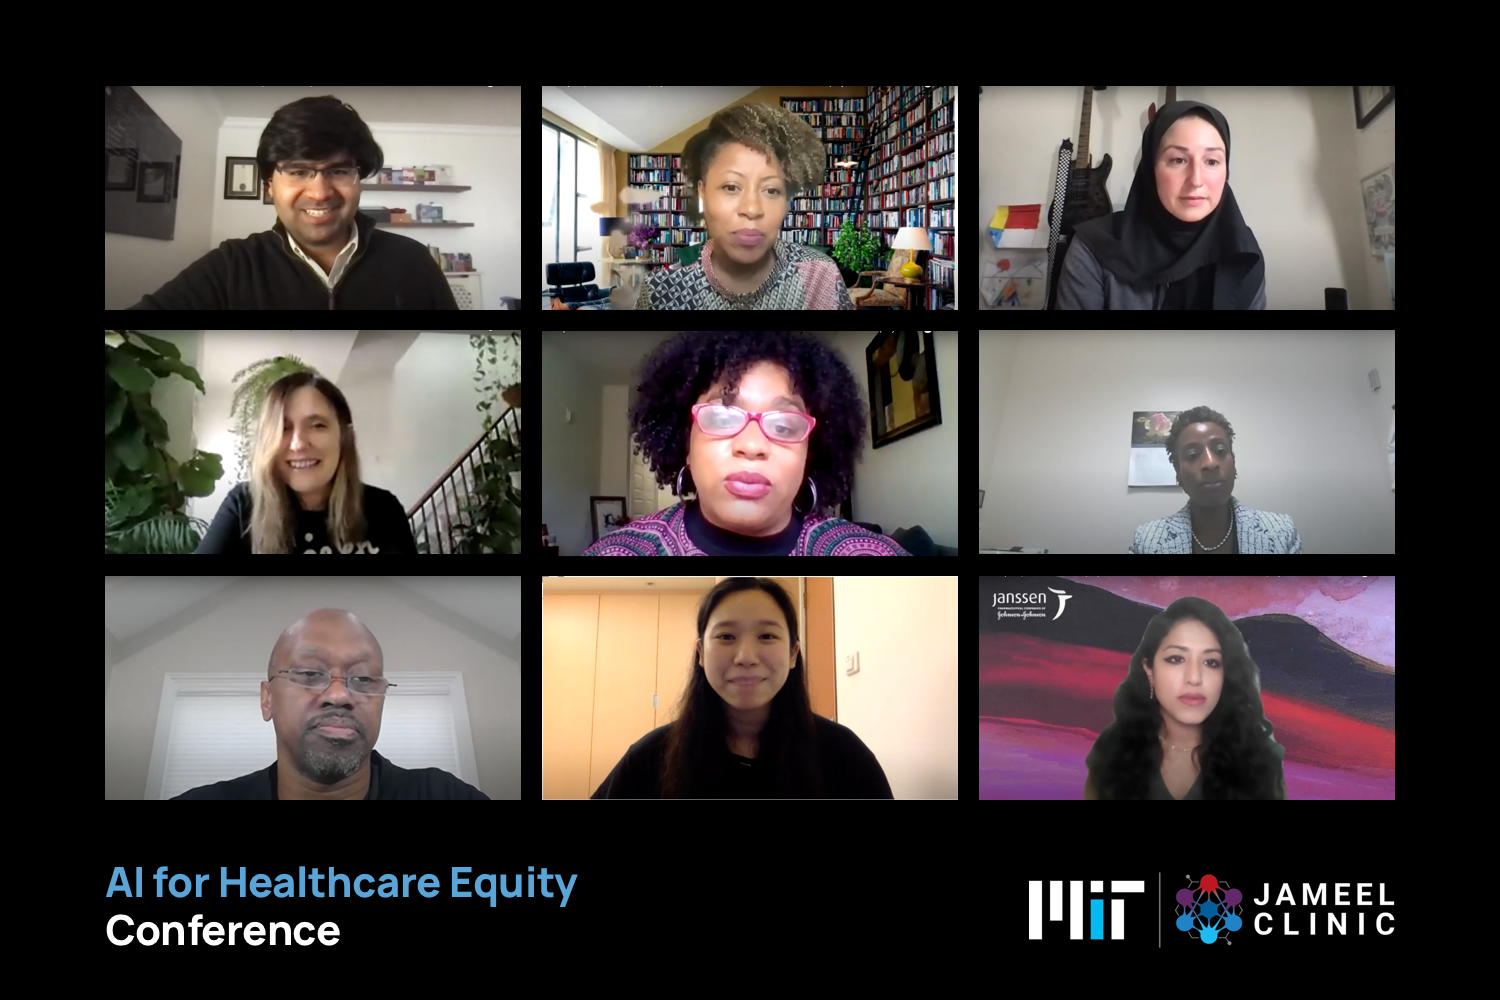 The potential of artificial intelligence to bring equity in health care